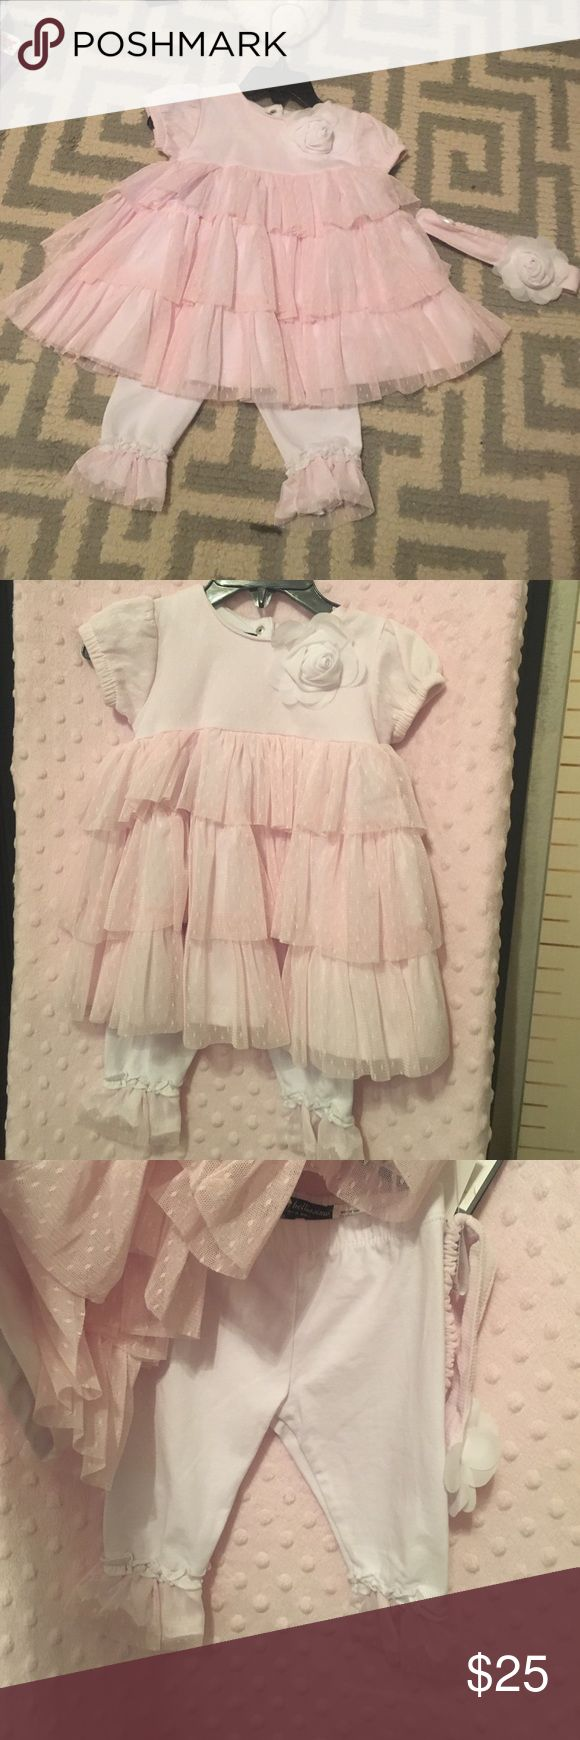 LAST CHANCE 💥Super frilly light pink matching Ruffles galore! Super cute! Matching set with head band NWT. LAST CHANCE💥 donating at the end of the week. Wendy Bellissimo Matching Sets